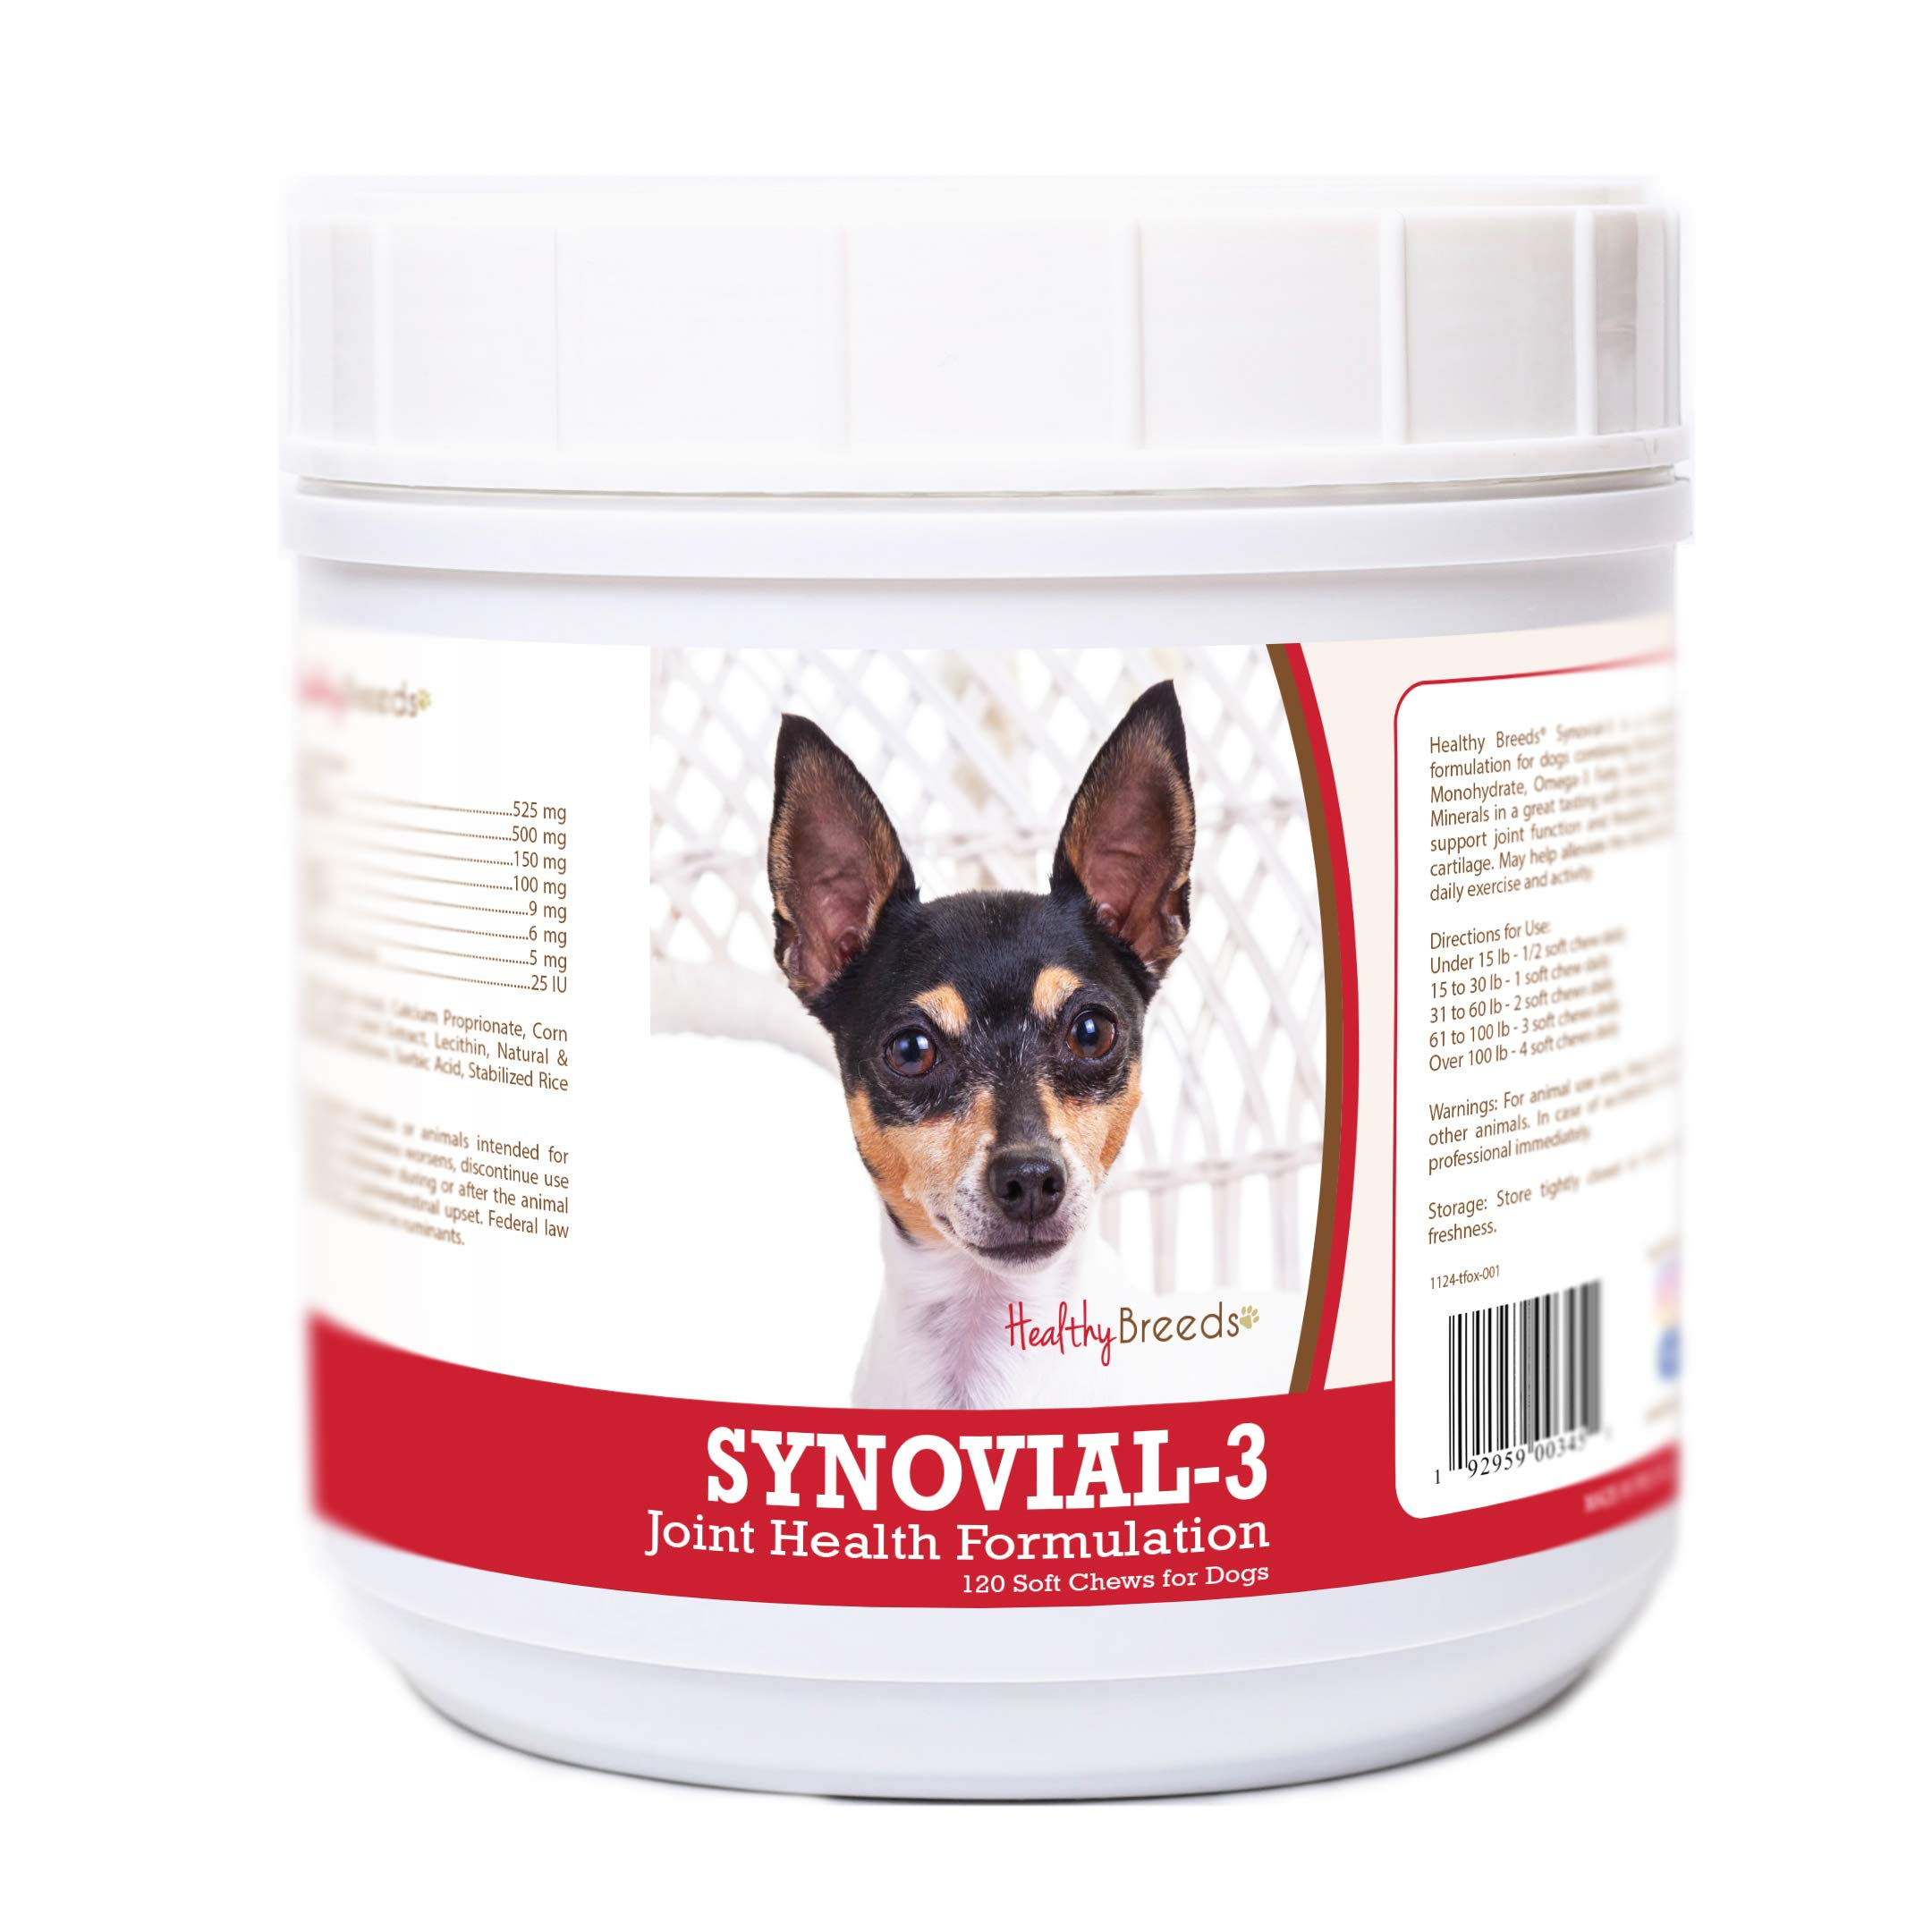 Healthy Breeds Toy Fox Terrier 120 Synovial-3 Joint Support